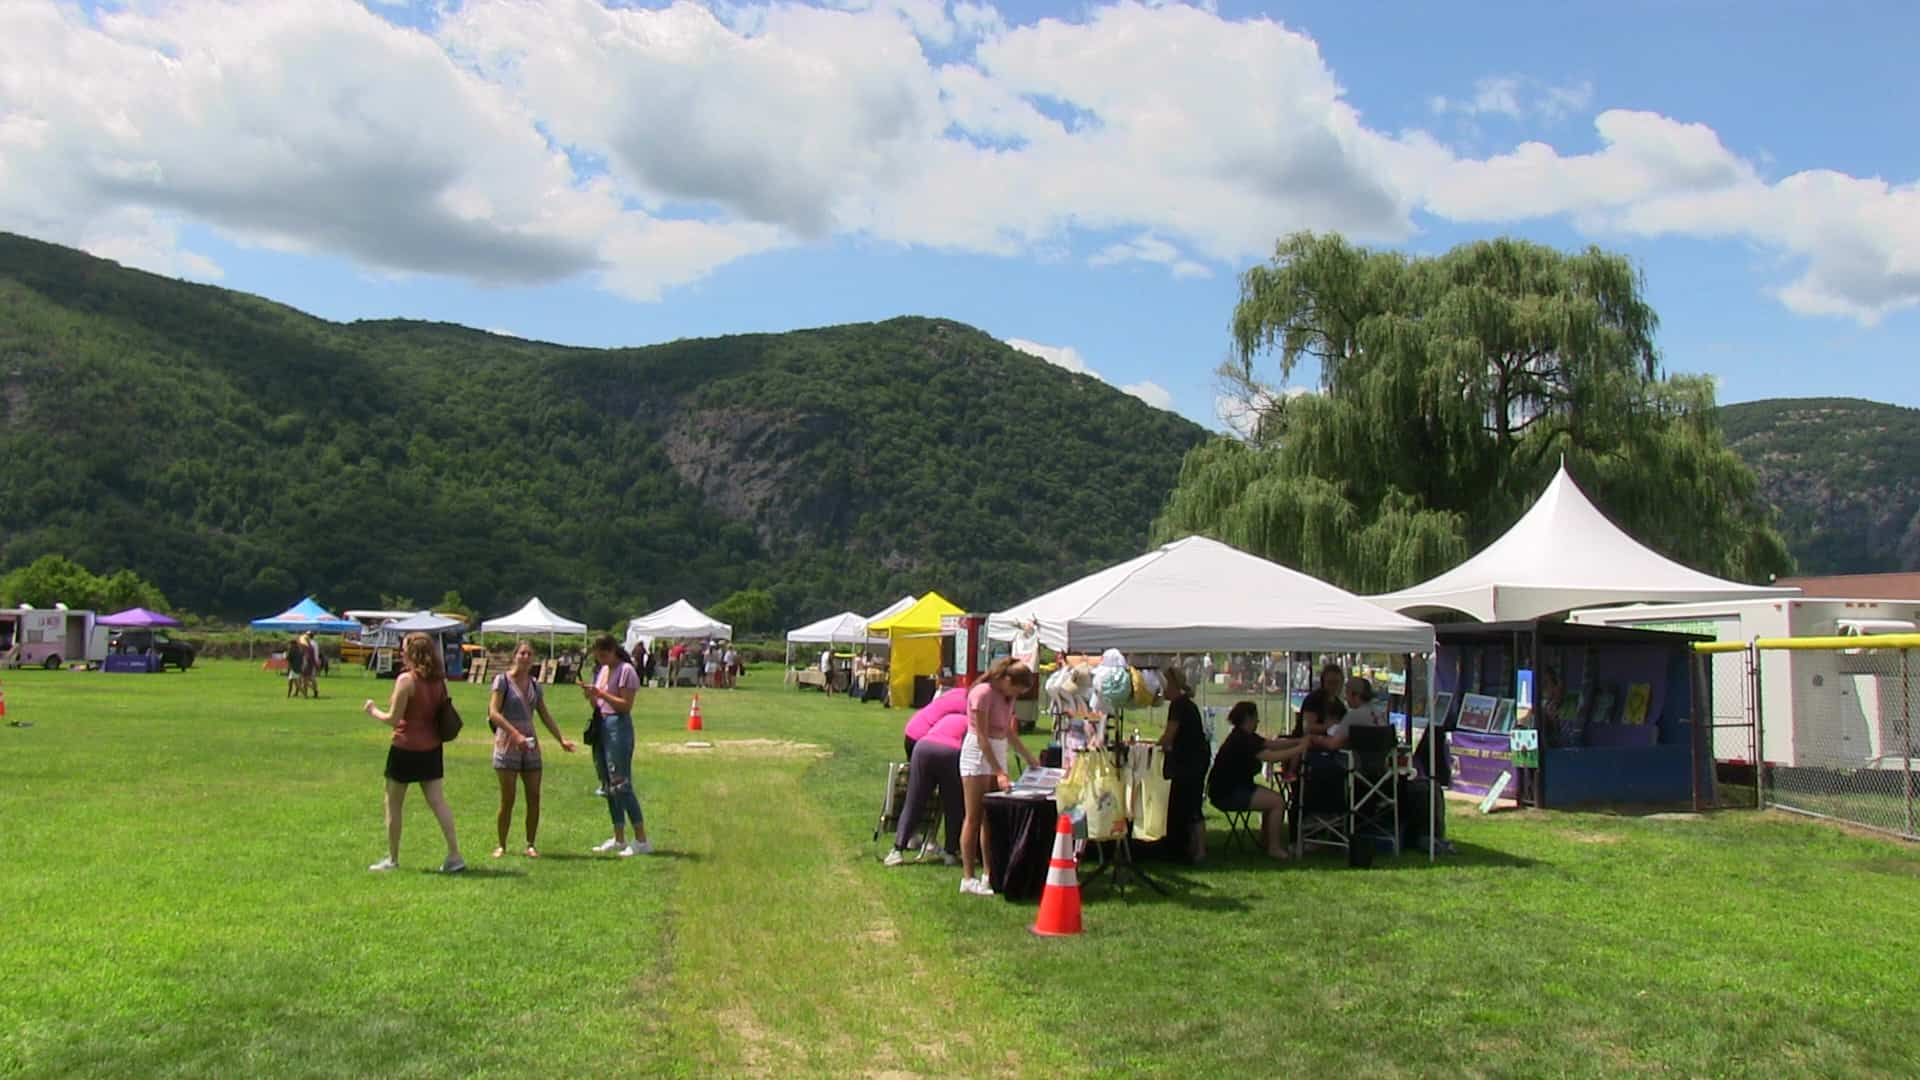 Take the Metro-North Hudson Line to Cold Spring to the fest